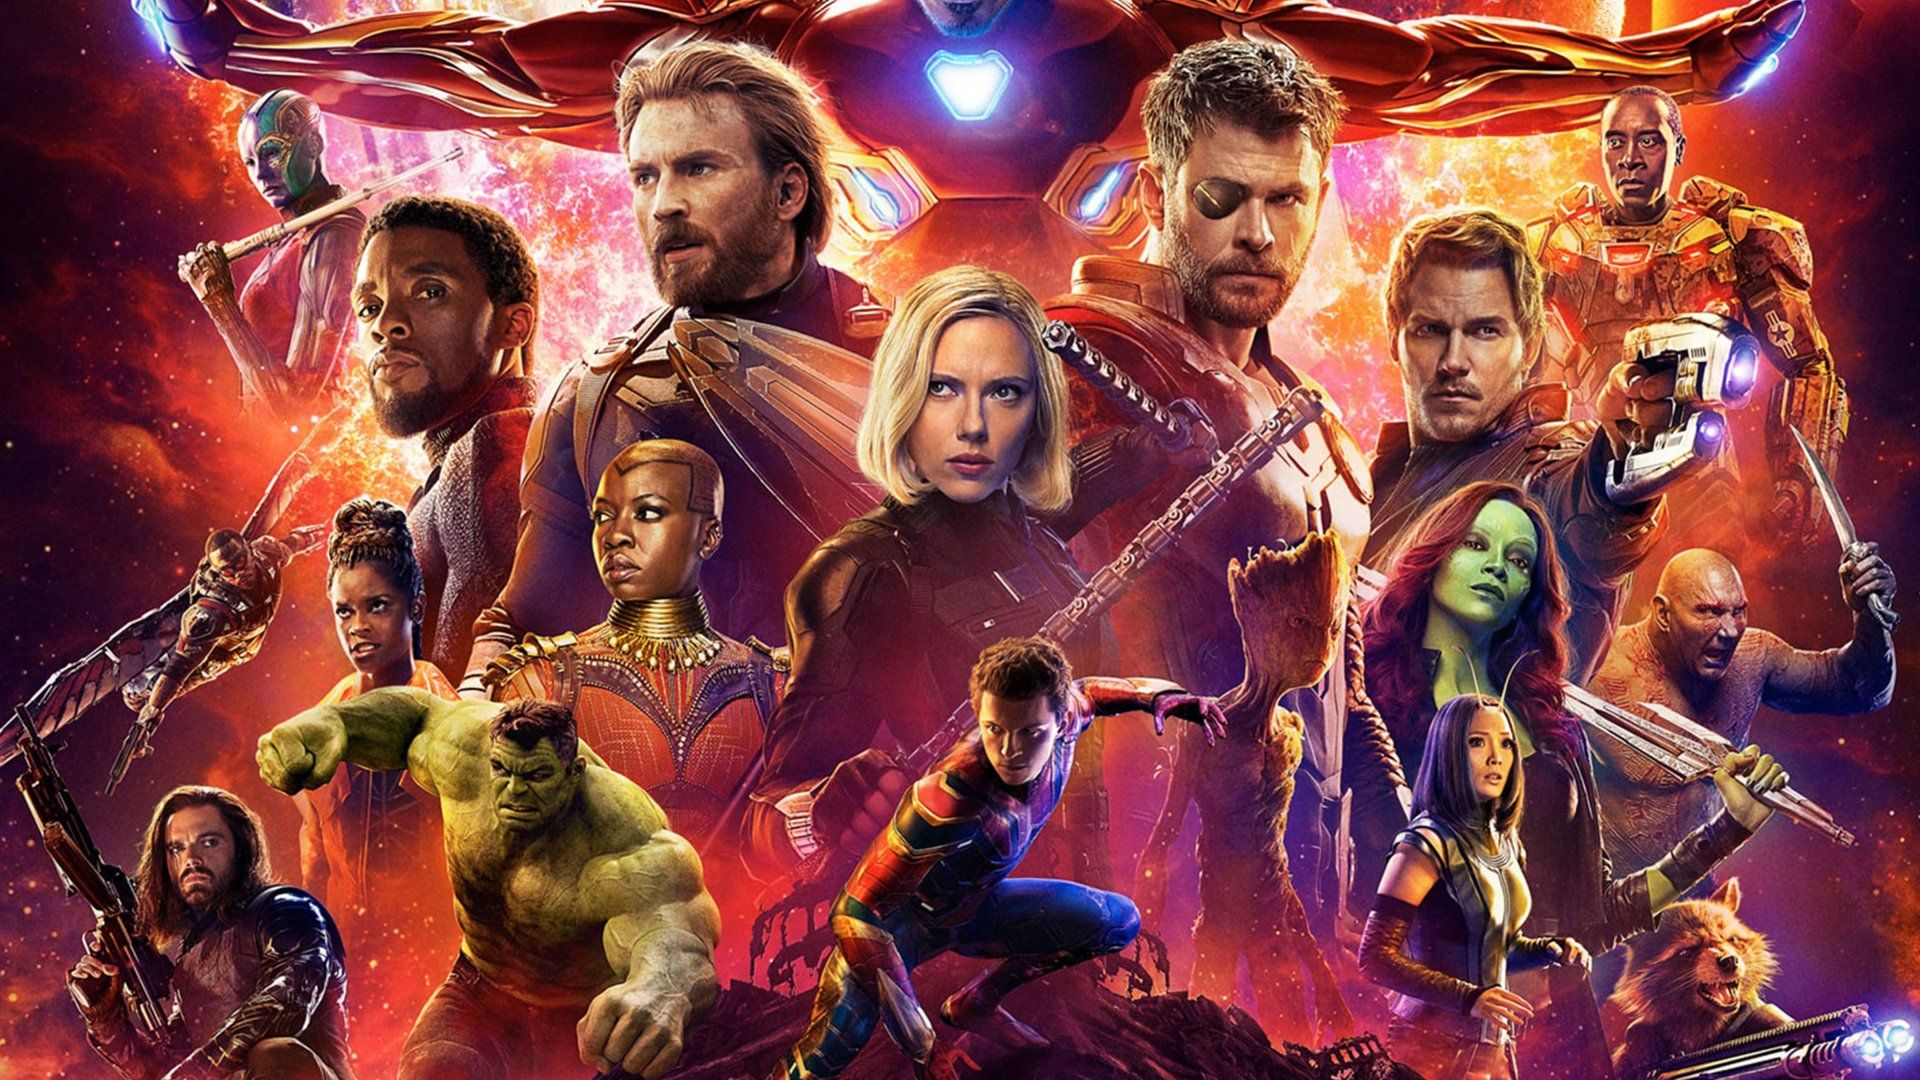 Avengers Infinity War 4k Ultra Hd Wallpaper And Background Image 4800x2700 Id 90962 Marvel Cinematic Universe Movies Avengers Movies Avengers Infinity War